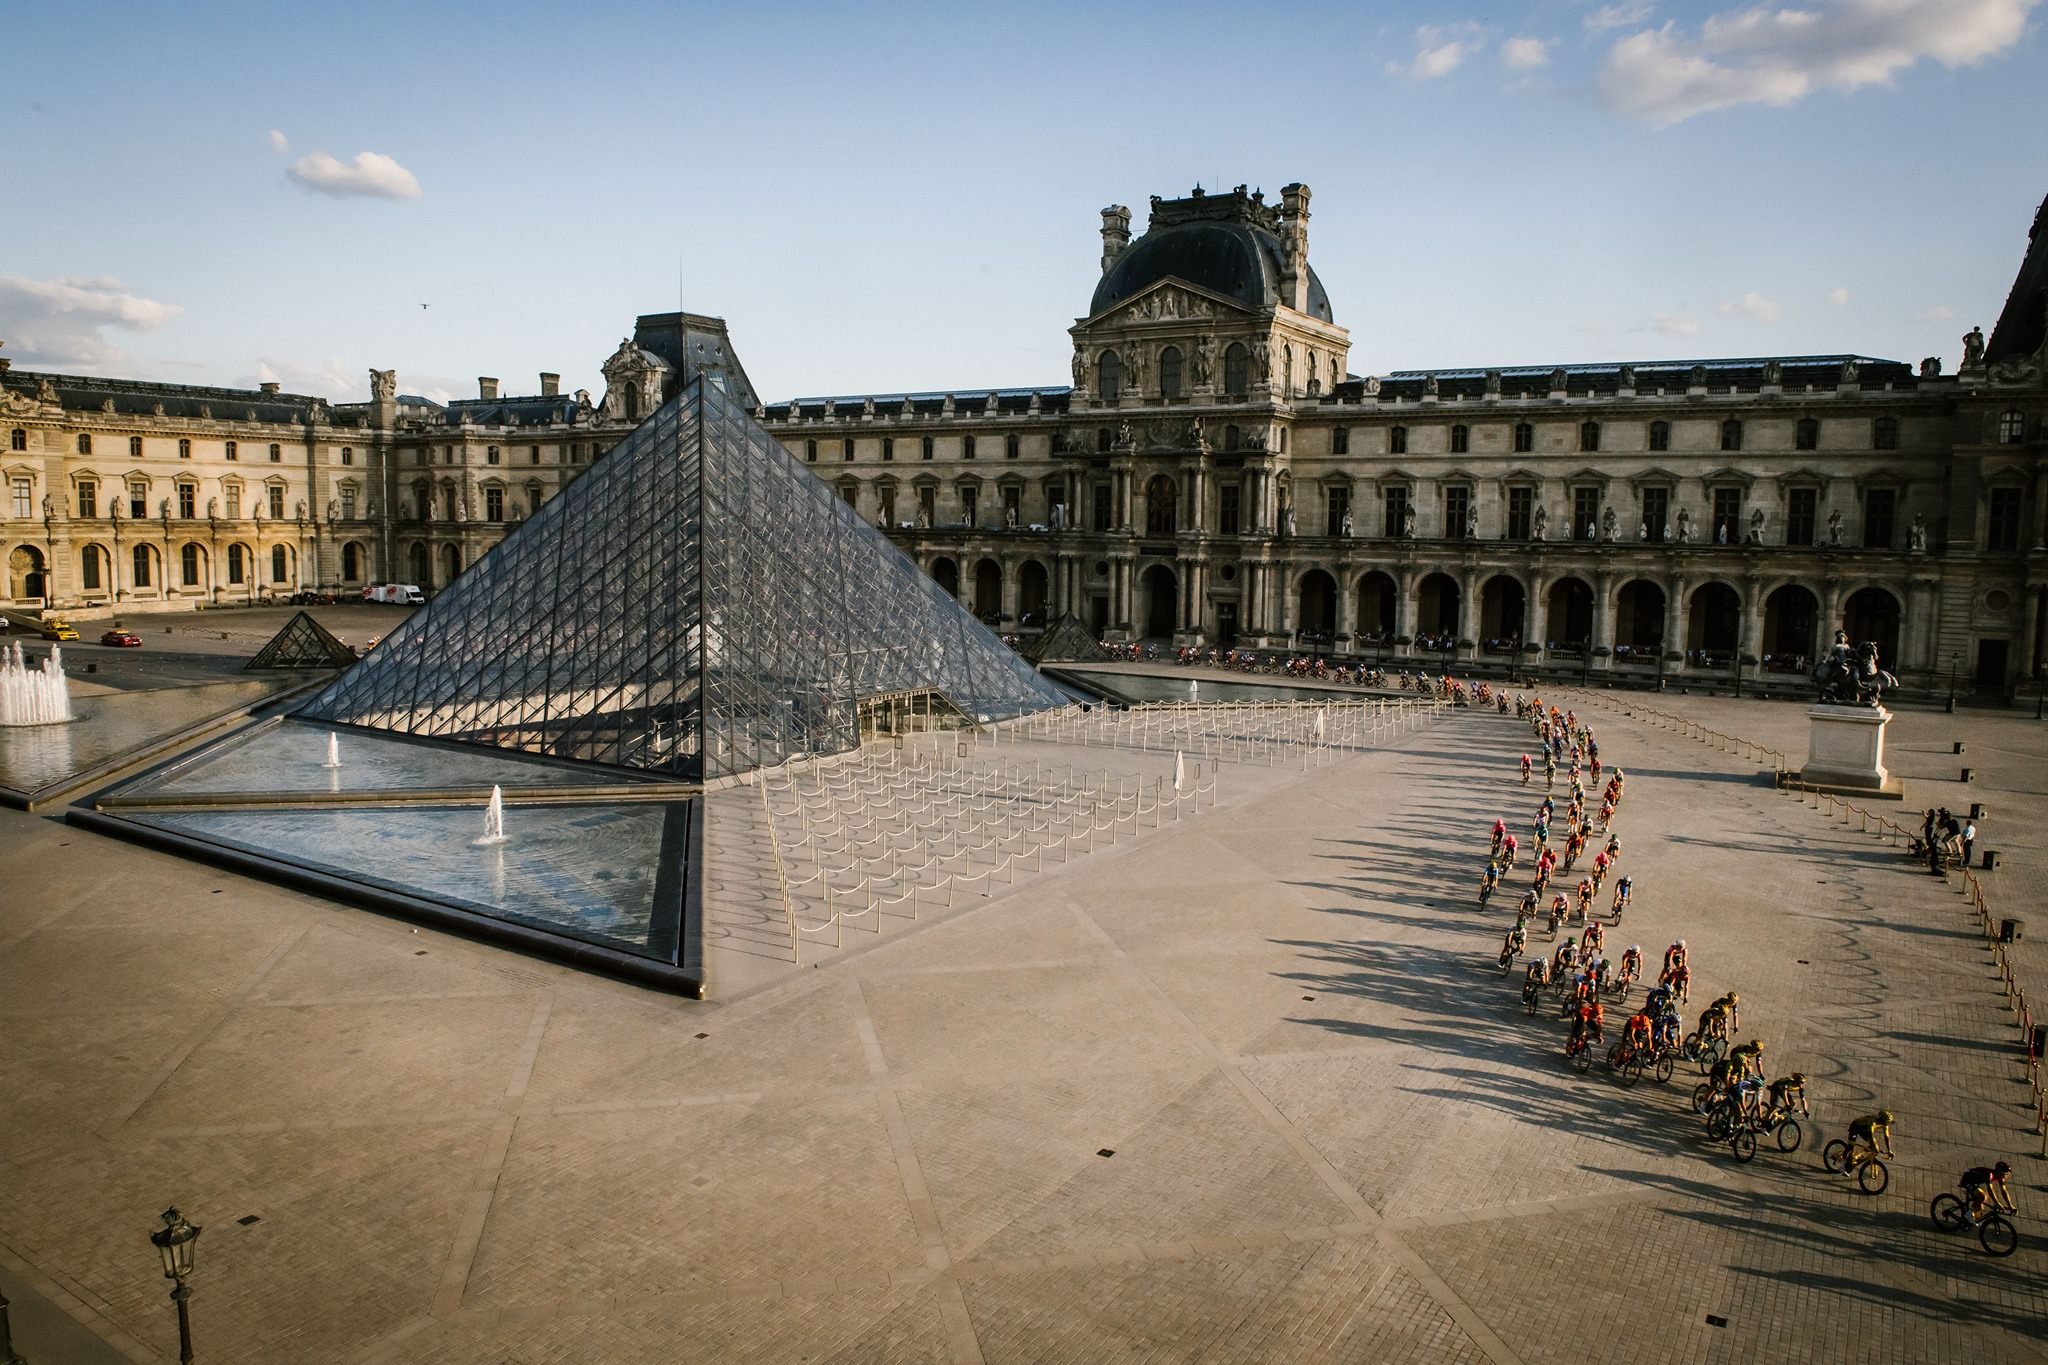 The courtyard of the Louvre, including the glass pyramid and a line of cyclists snaking through the space.